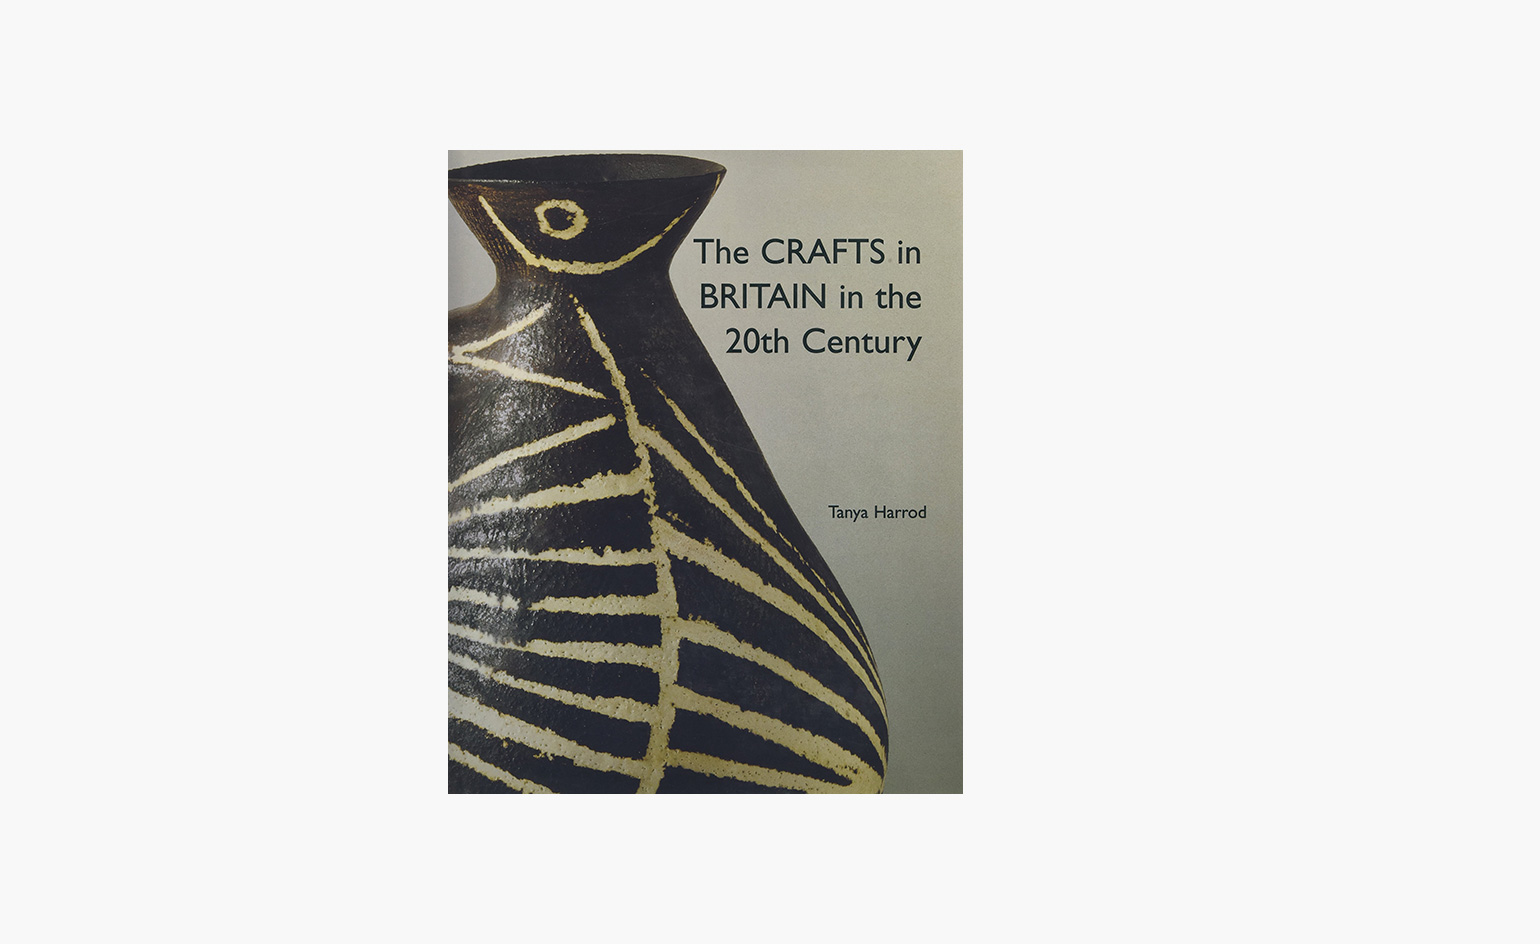 The Crafts in Britain in the 20th Century – Tanya Harrod cover